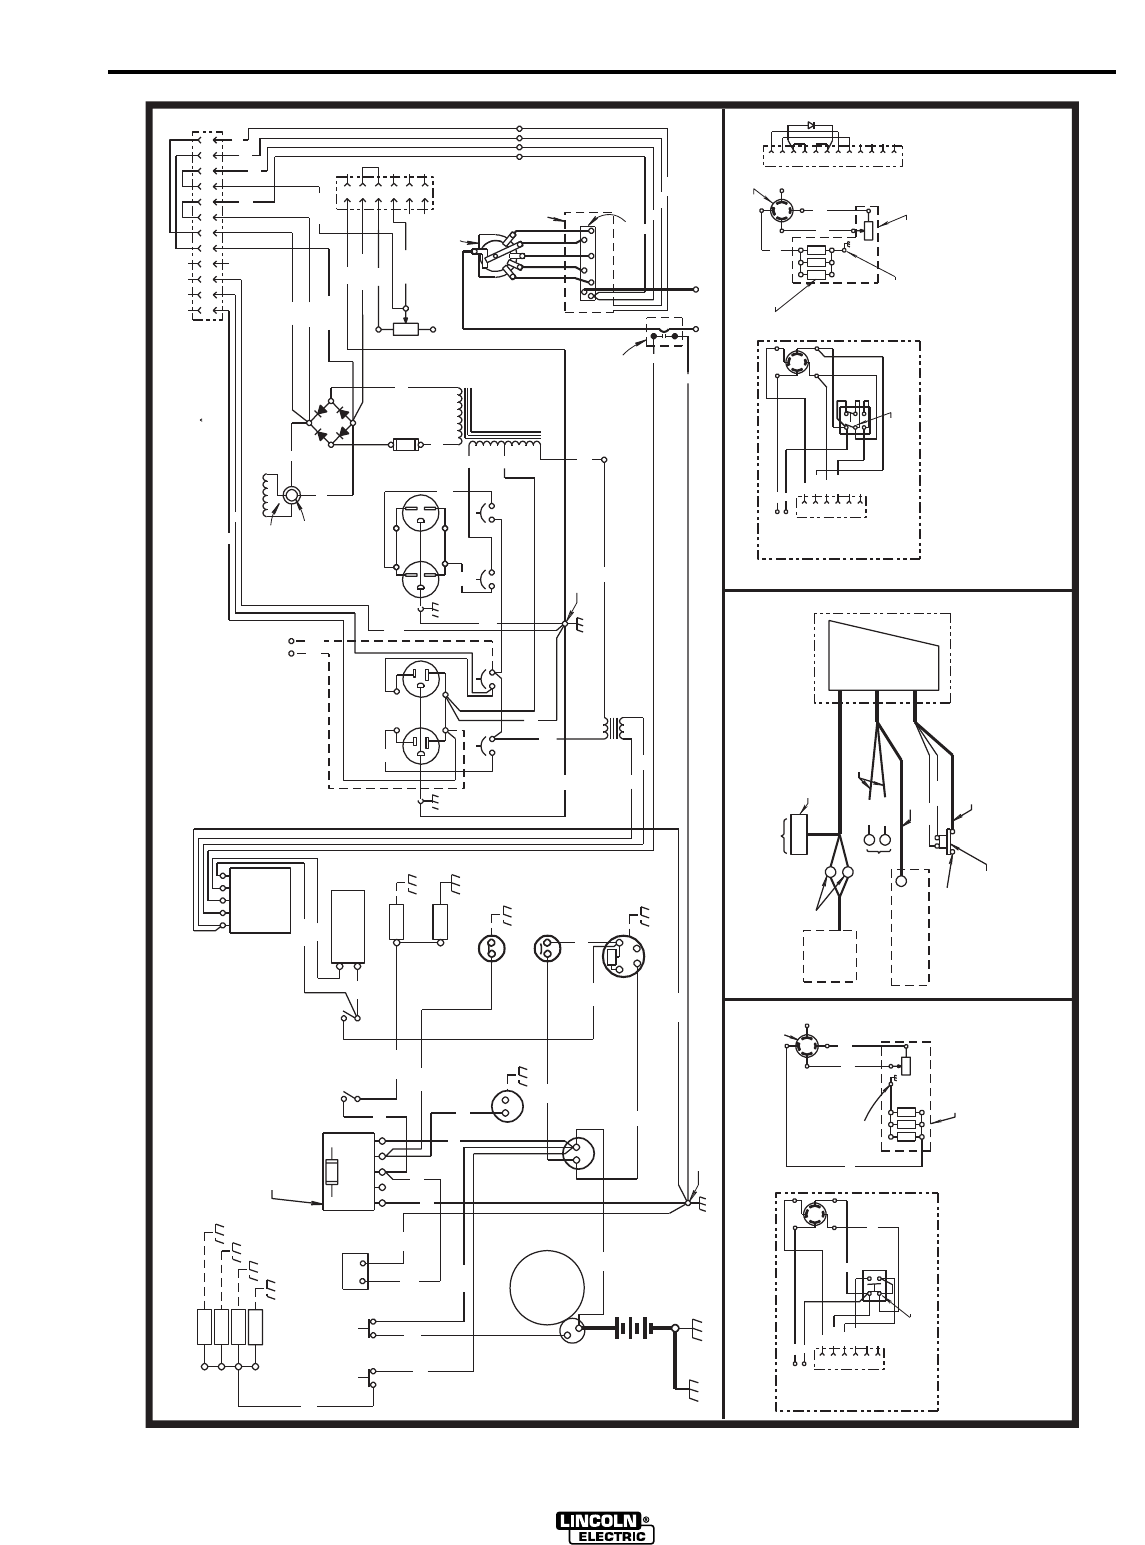 lincoln idealarc wiring diagram